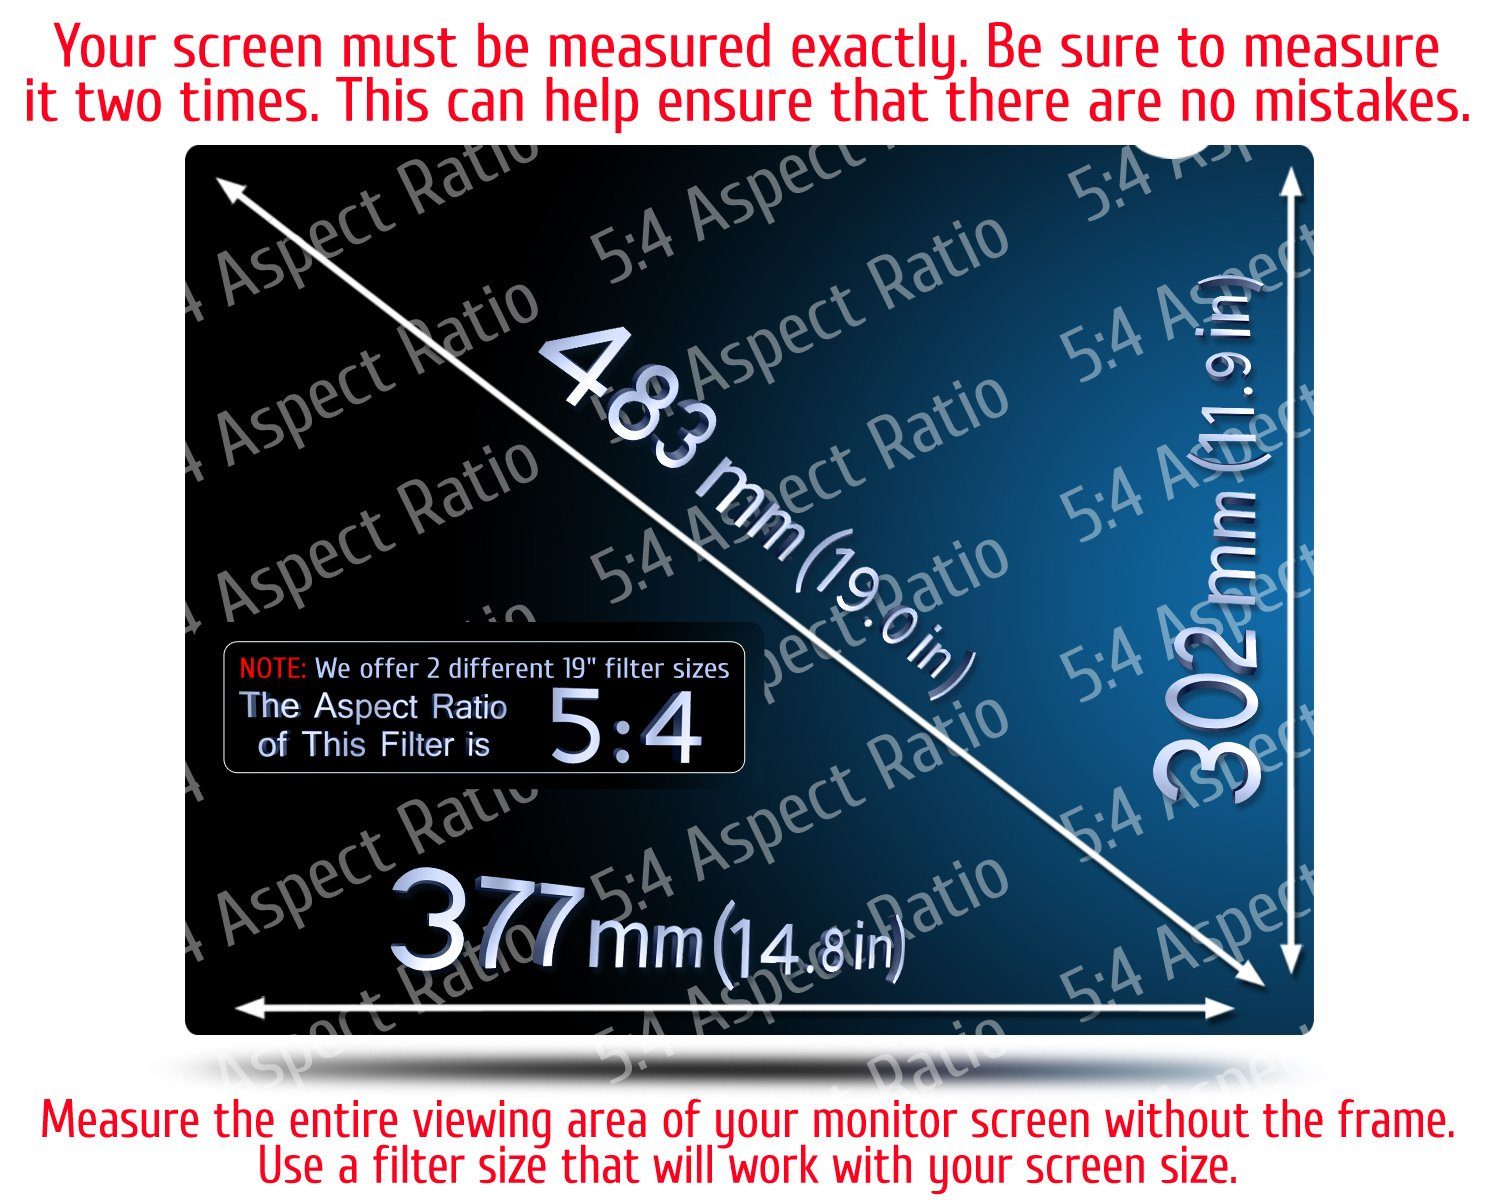 19 Inch - 5:4 Aspect Ratio Computer Privacy Screen Filter for Square Computer Monitor - Anti-Glare - Anti-Scratch Protector Film for Data Confidentiality - Please Measure Carefully! by VINTEZ (Image #2)